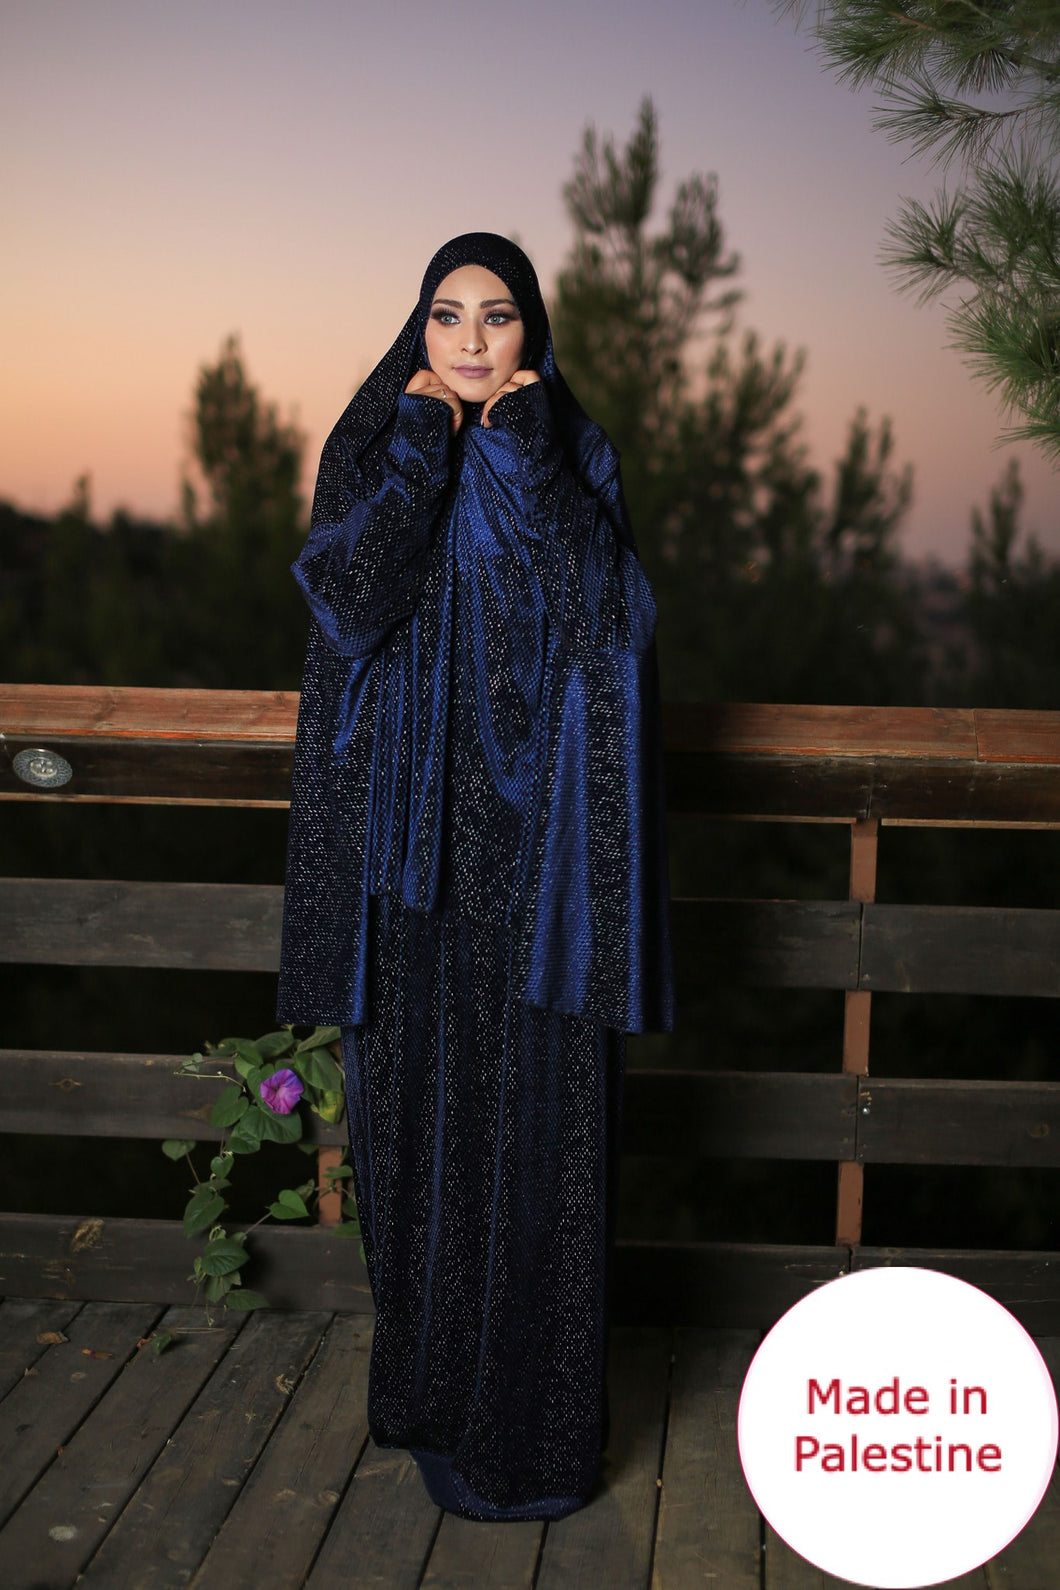 Free Size Shiny Navy Smooth Velvet Prayer Dress Hijab Scarf Islamic Abaya Prayer Clothes